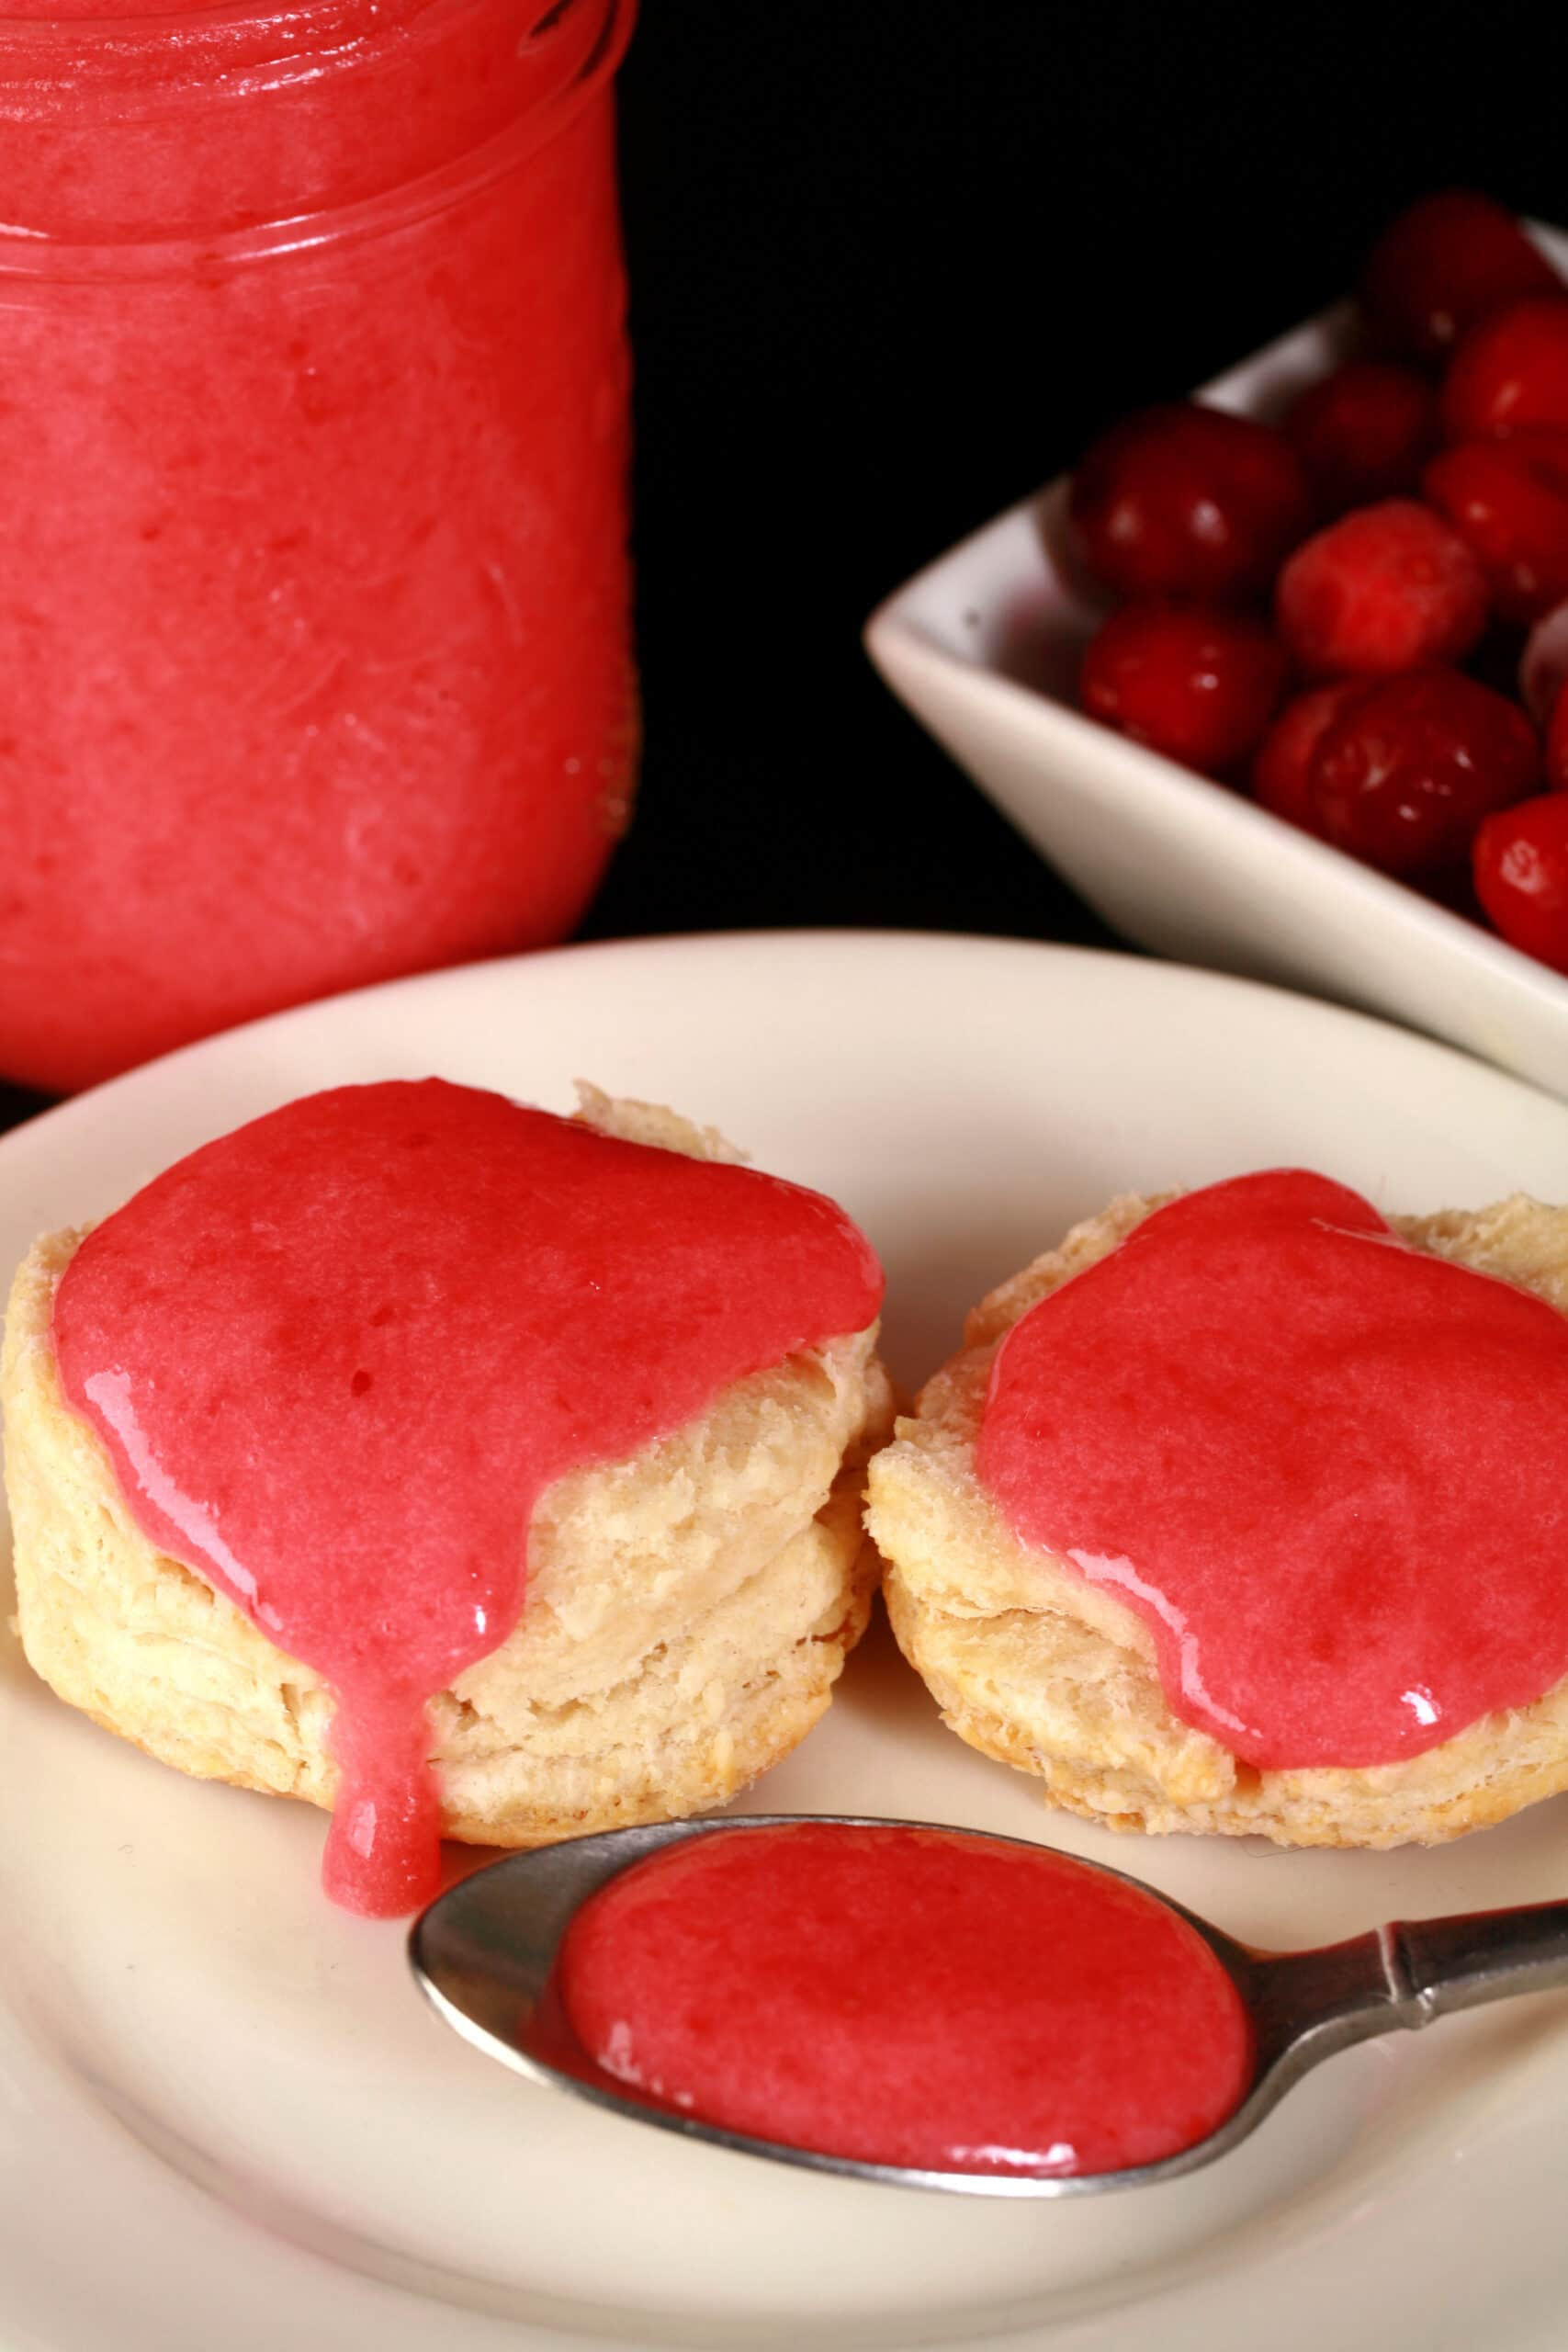 Two biscuits topped with cranberry curd on a plate, with a spoon and jar of curd nearby.